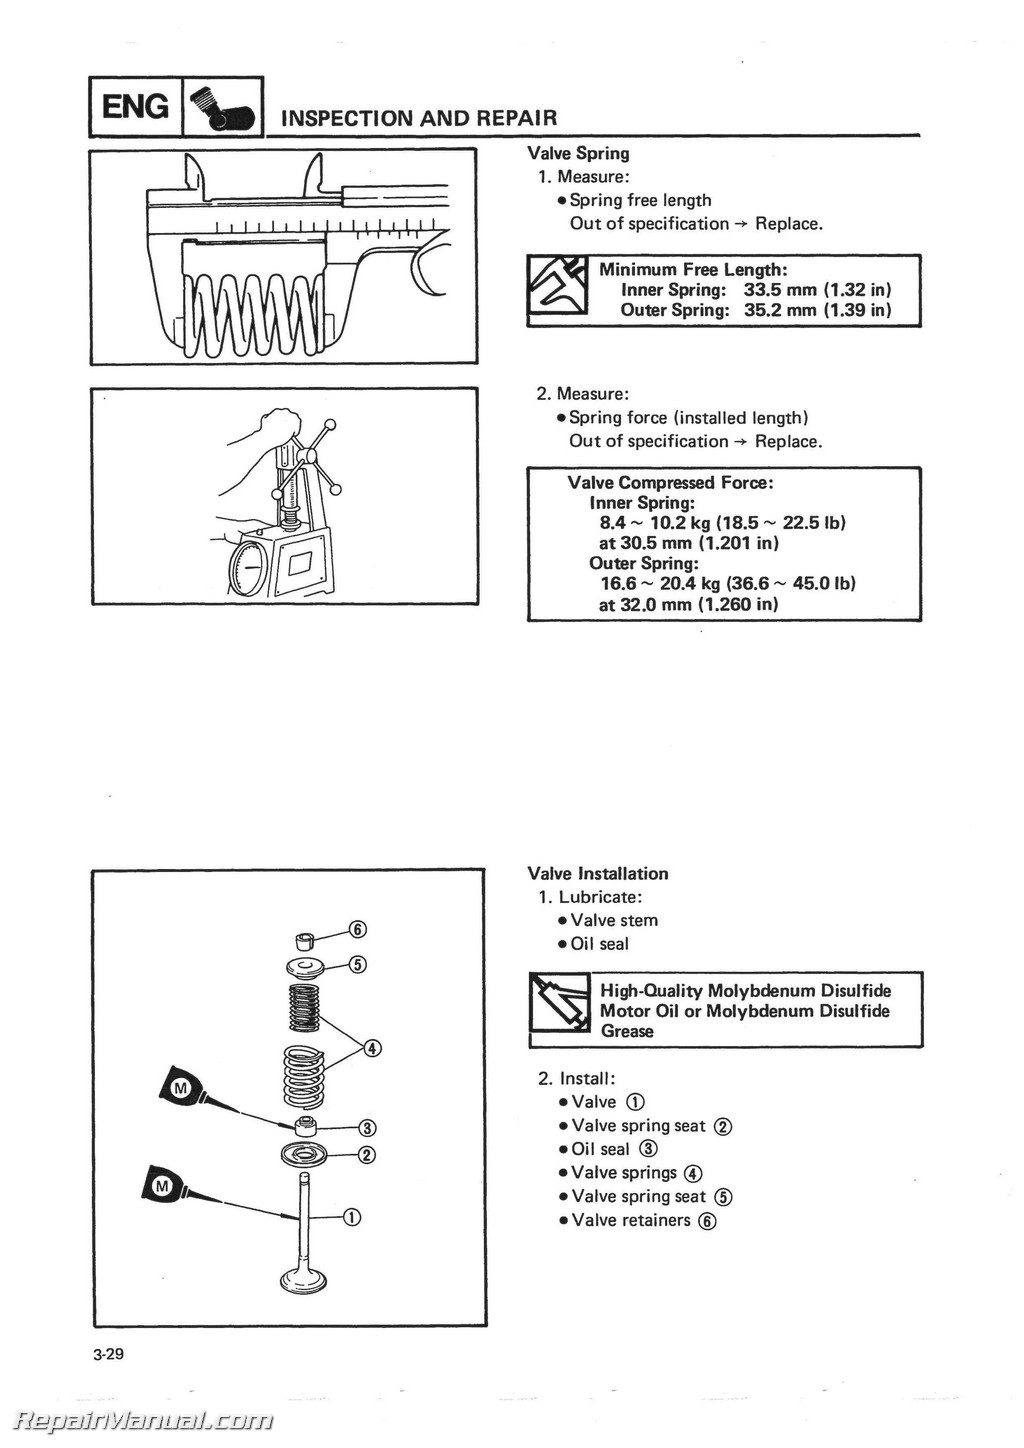 Yamaha Moto 4 Manual Ide Dimage De 95 Wiring Diagram Get Free Image About Famous 200 Gallery Electrical Download 1024 X 1448